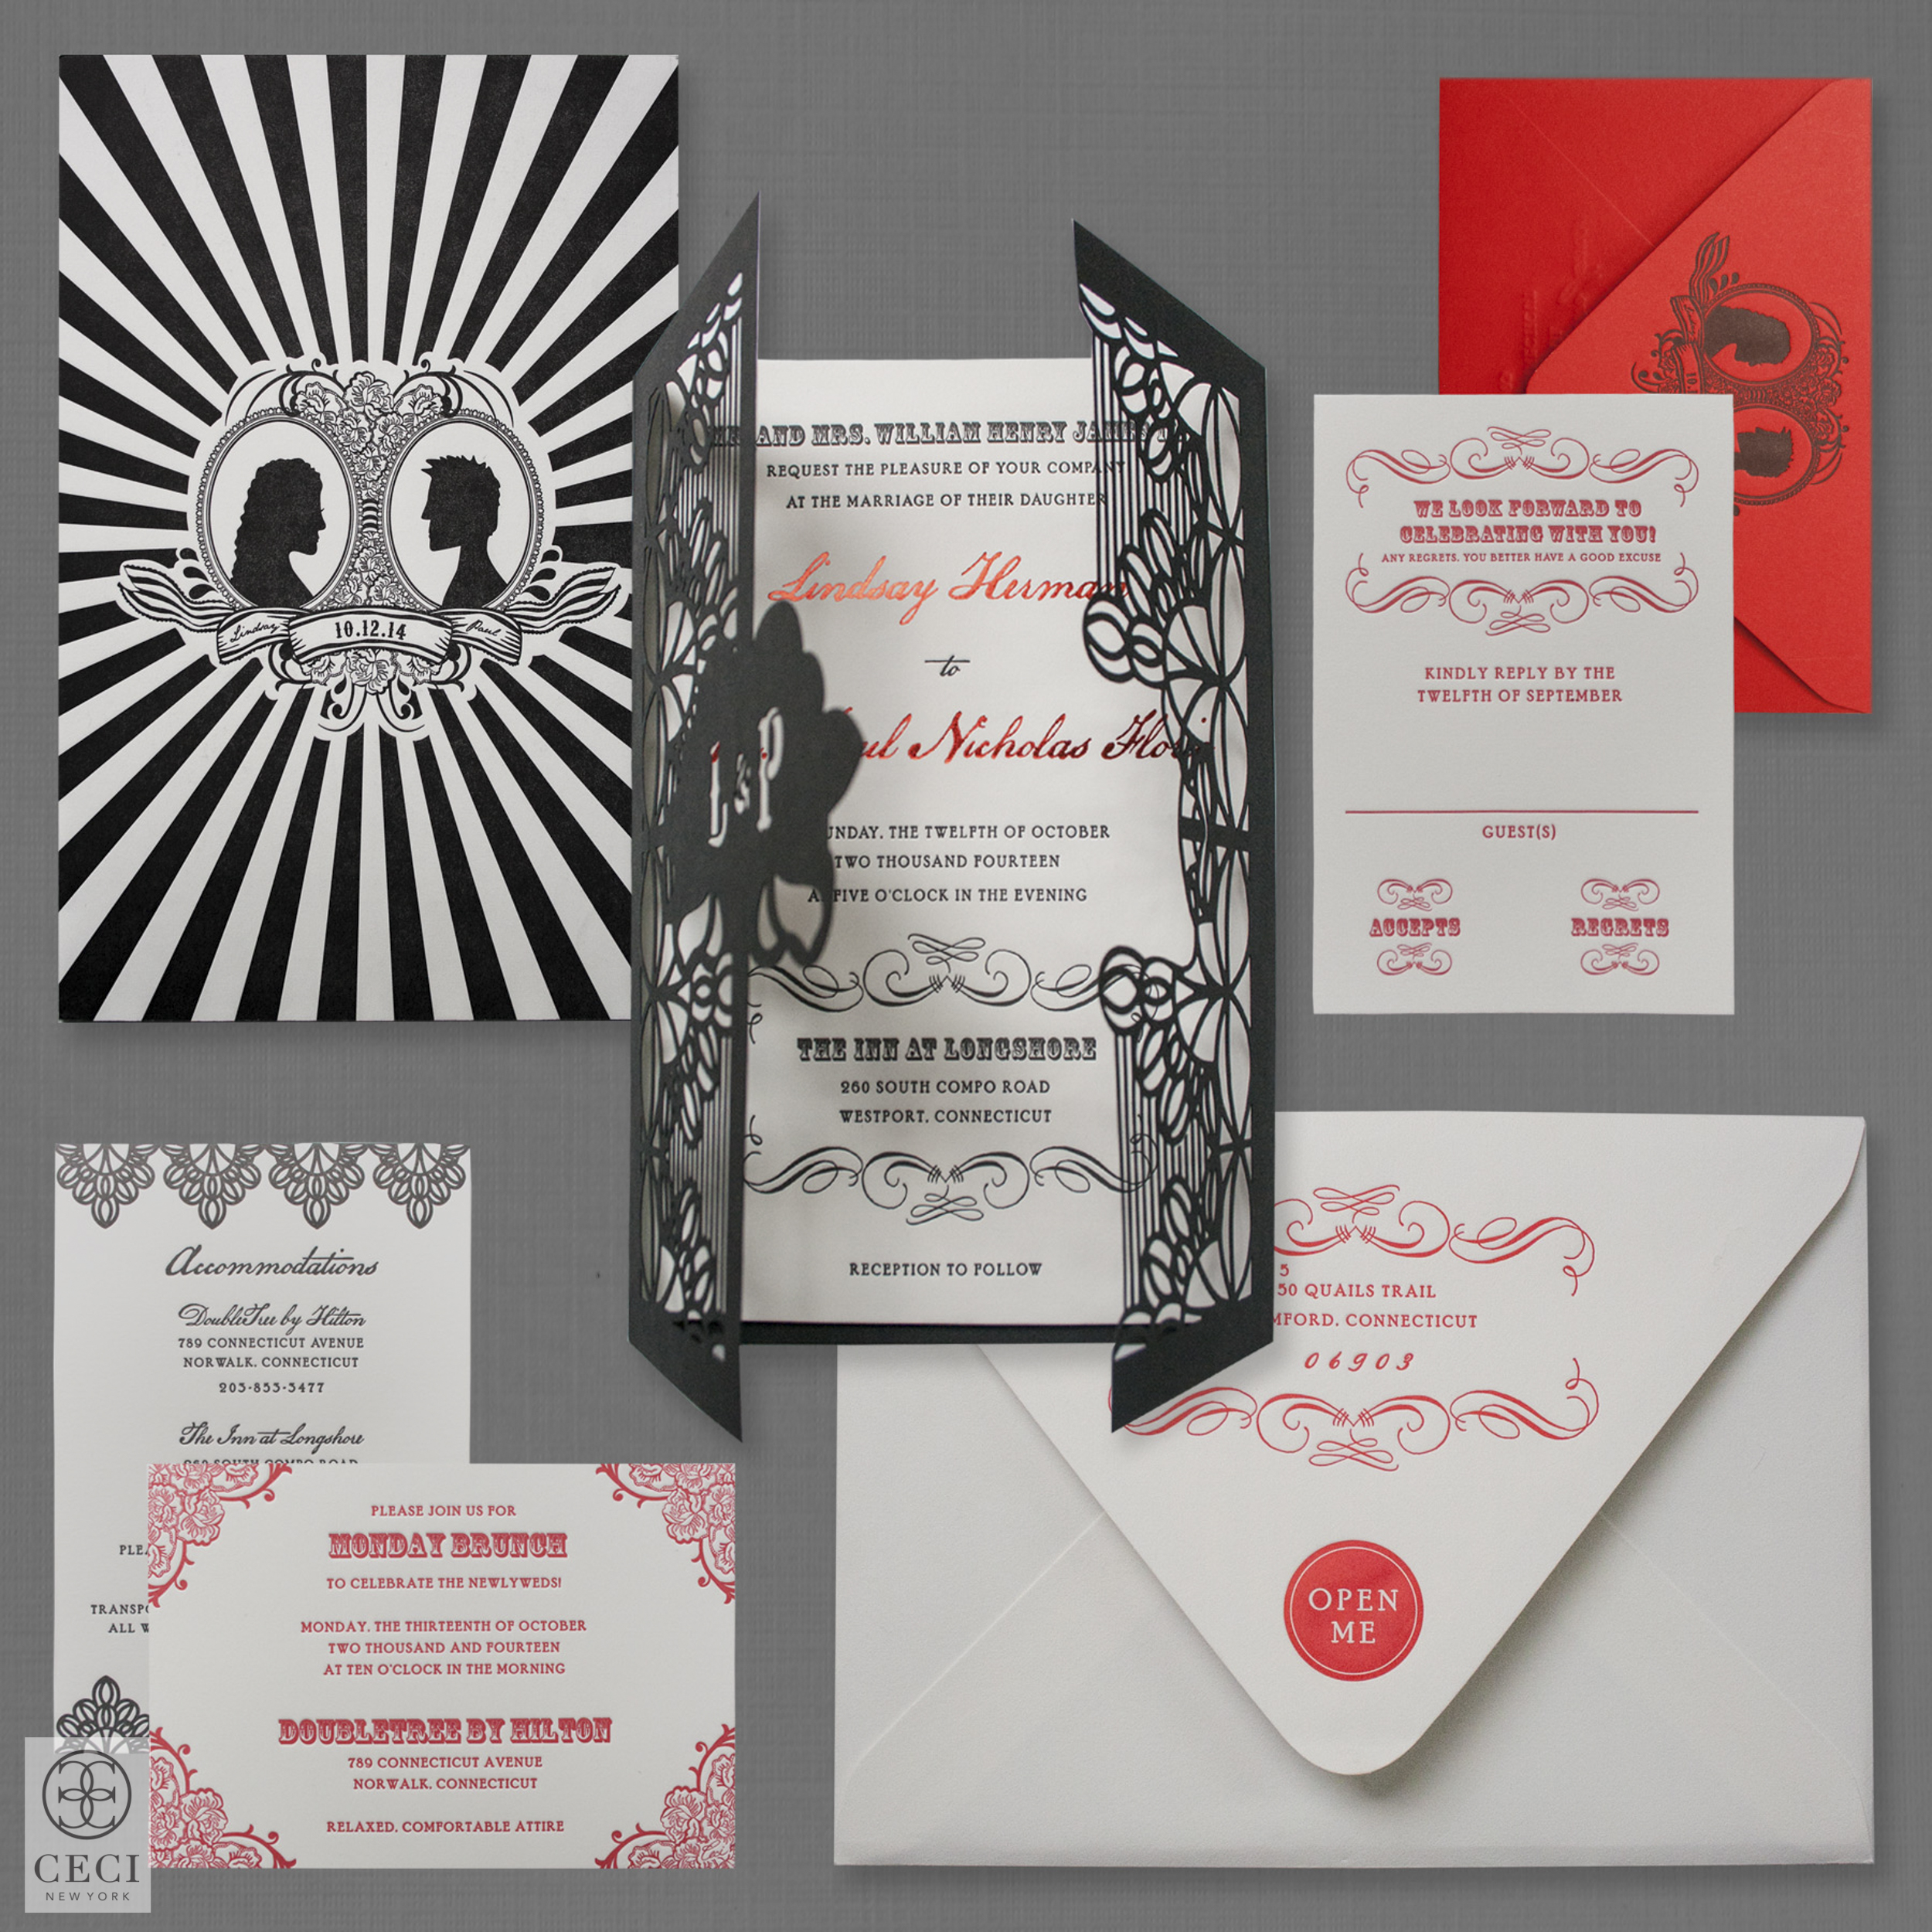 ceci_new_york_wedding_invitation_design_black_red_dramatic_macabre_statement-13.jpg